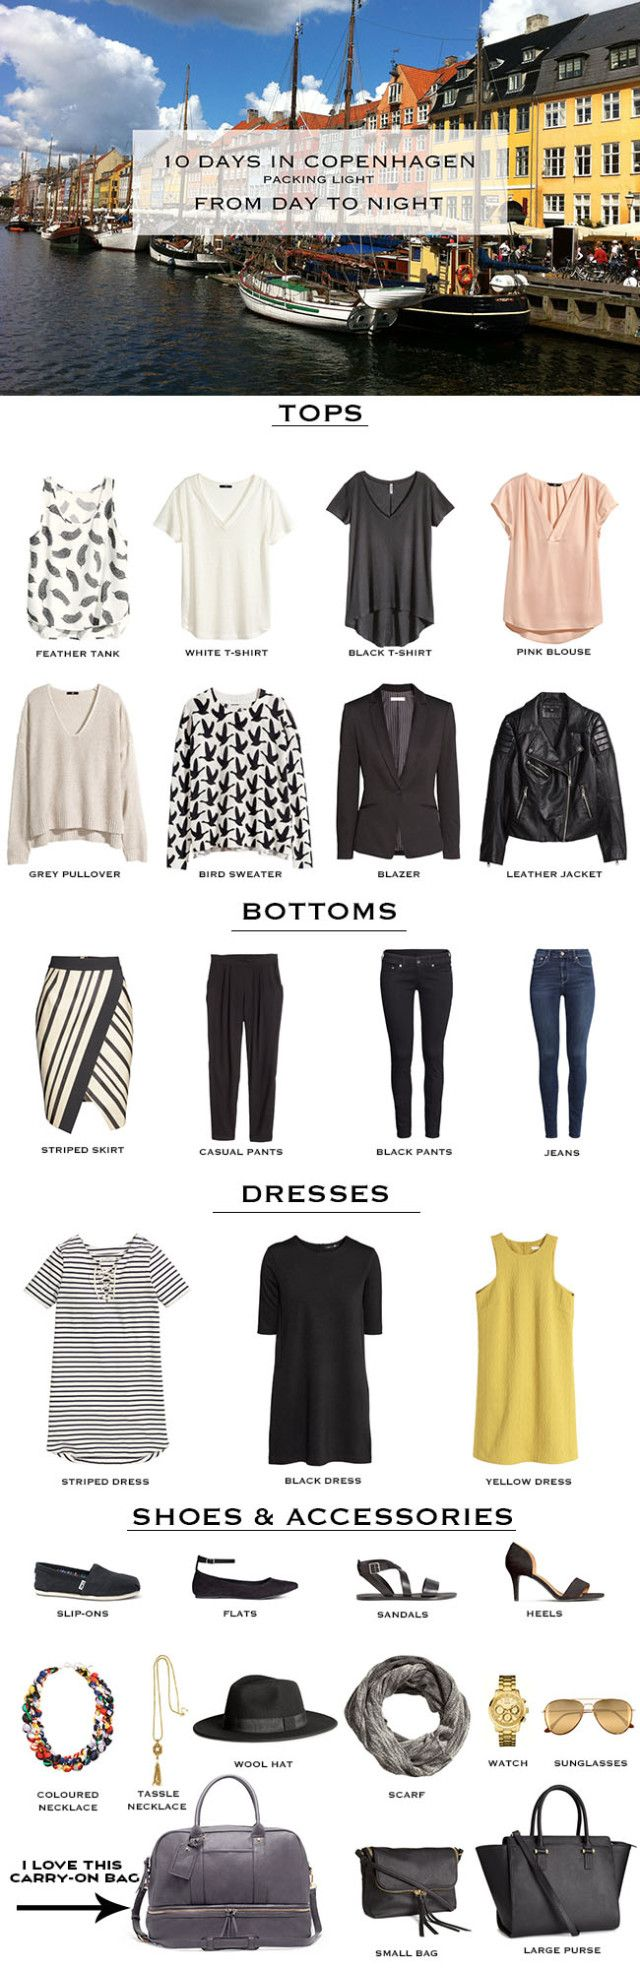 10 Days in Copenhagen Packing List. Packing light and travel light in a carry-on. #travellight #packinglight #packinginacarryon